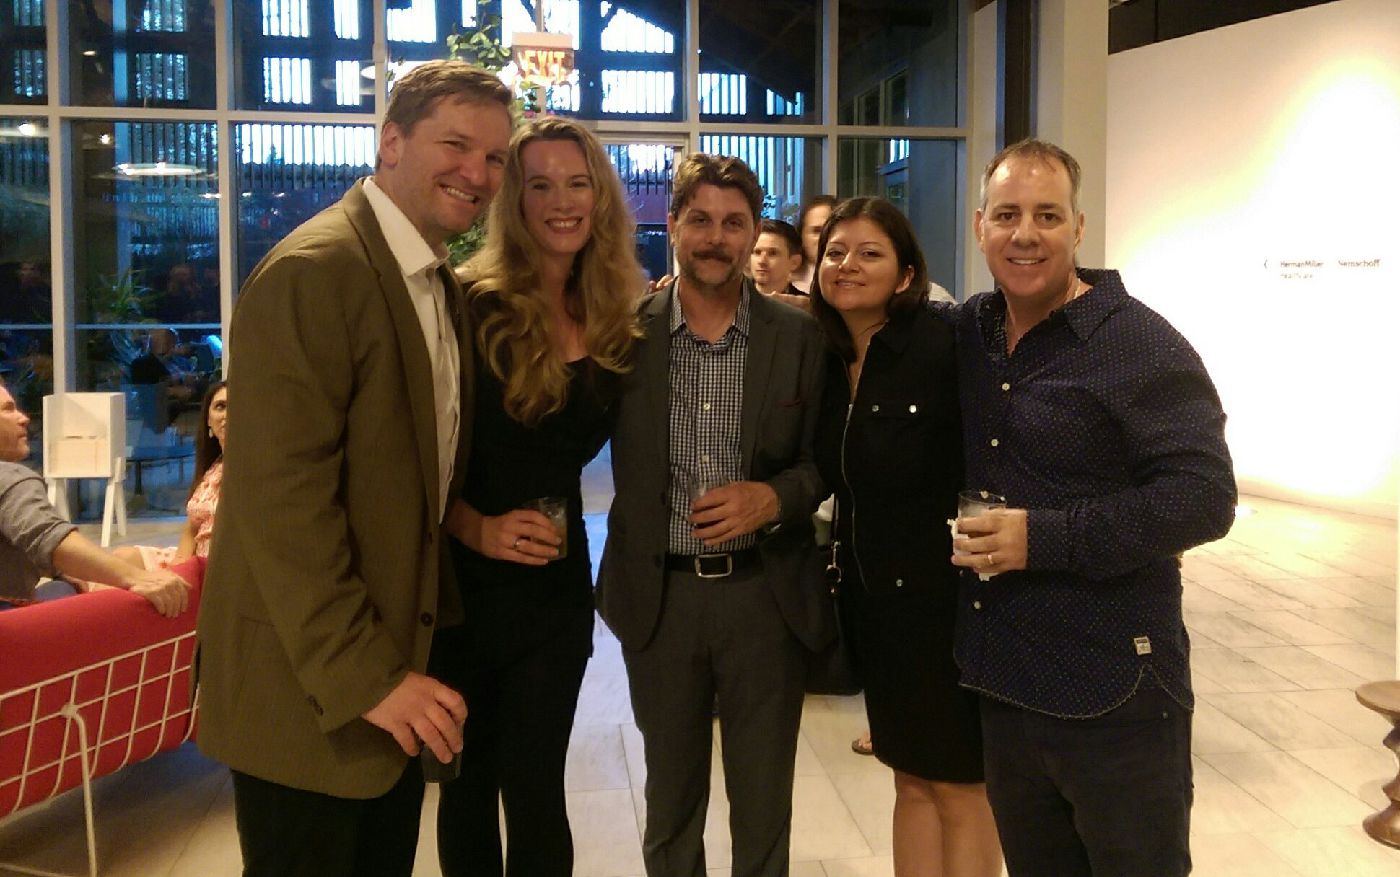 Ted Balaker, Courtney Balaker (Korchula Productions), Johnny Dowers (Actor), Roxana Warbasse, Philip Warbasse (Warbasse Design)